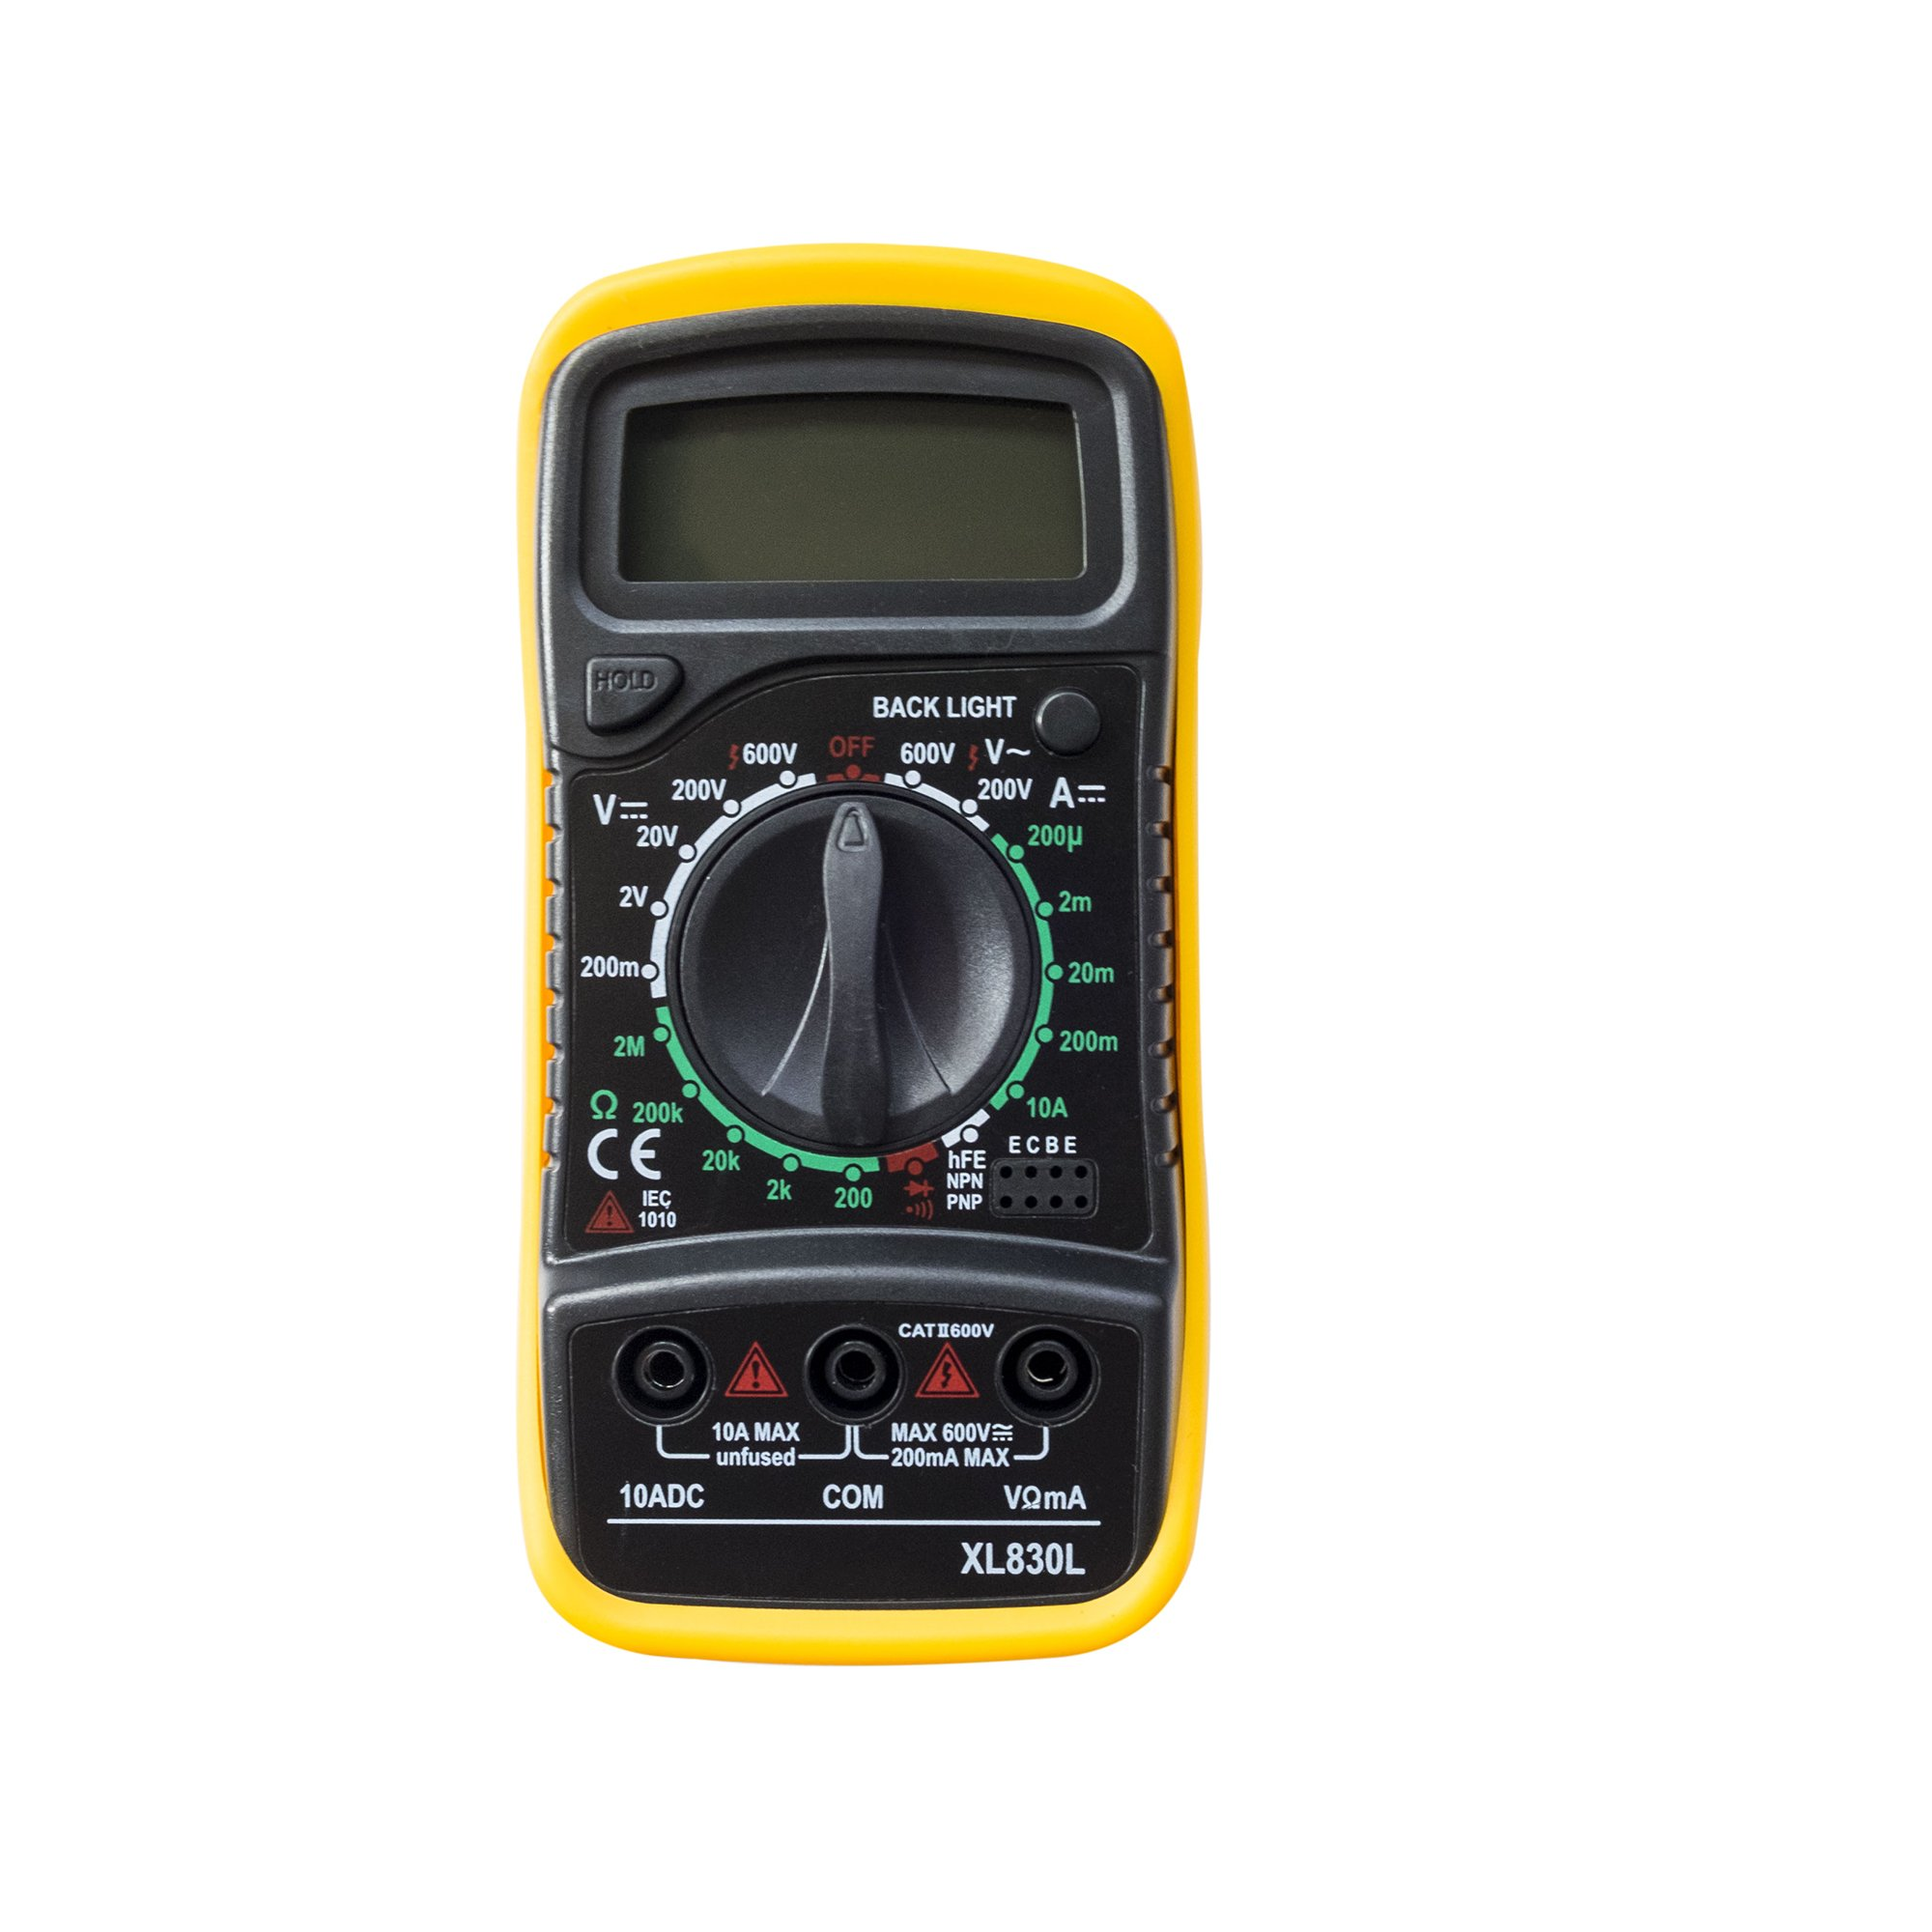 YAOGONG 830L Digital Multimeters Portable Multi Tester Voltmeter Ammeter Ohmmeter AC/DC Voltage DC Current Resistance Tester with Back light LCD Yellow(Warranty)